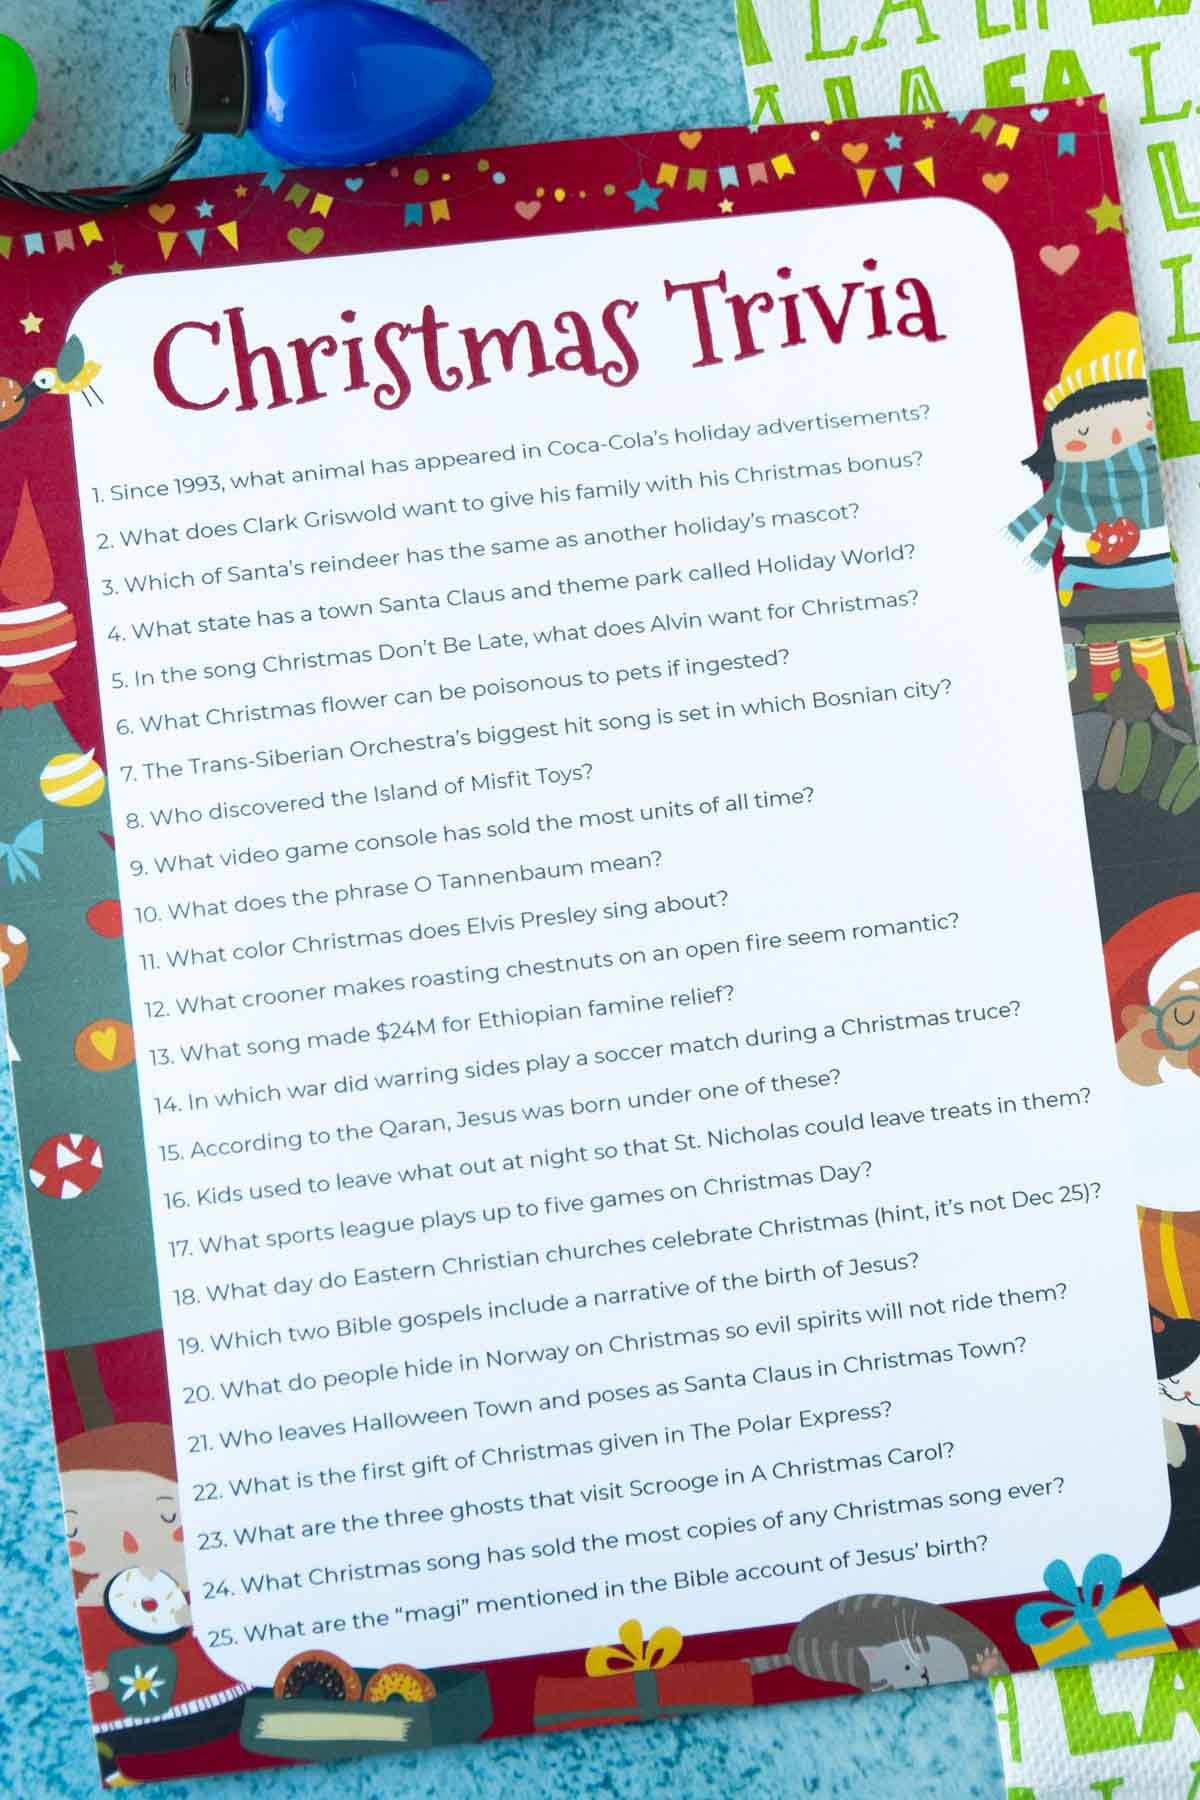 Printed out Christmas trivia questions